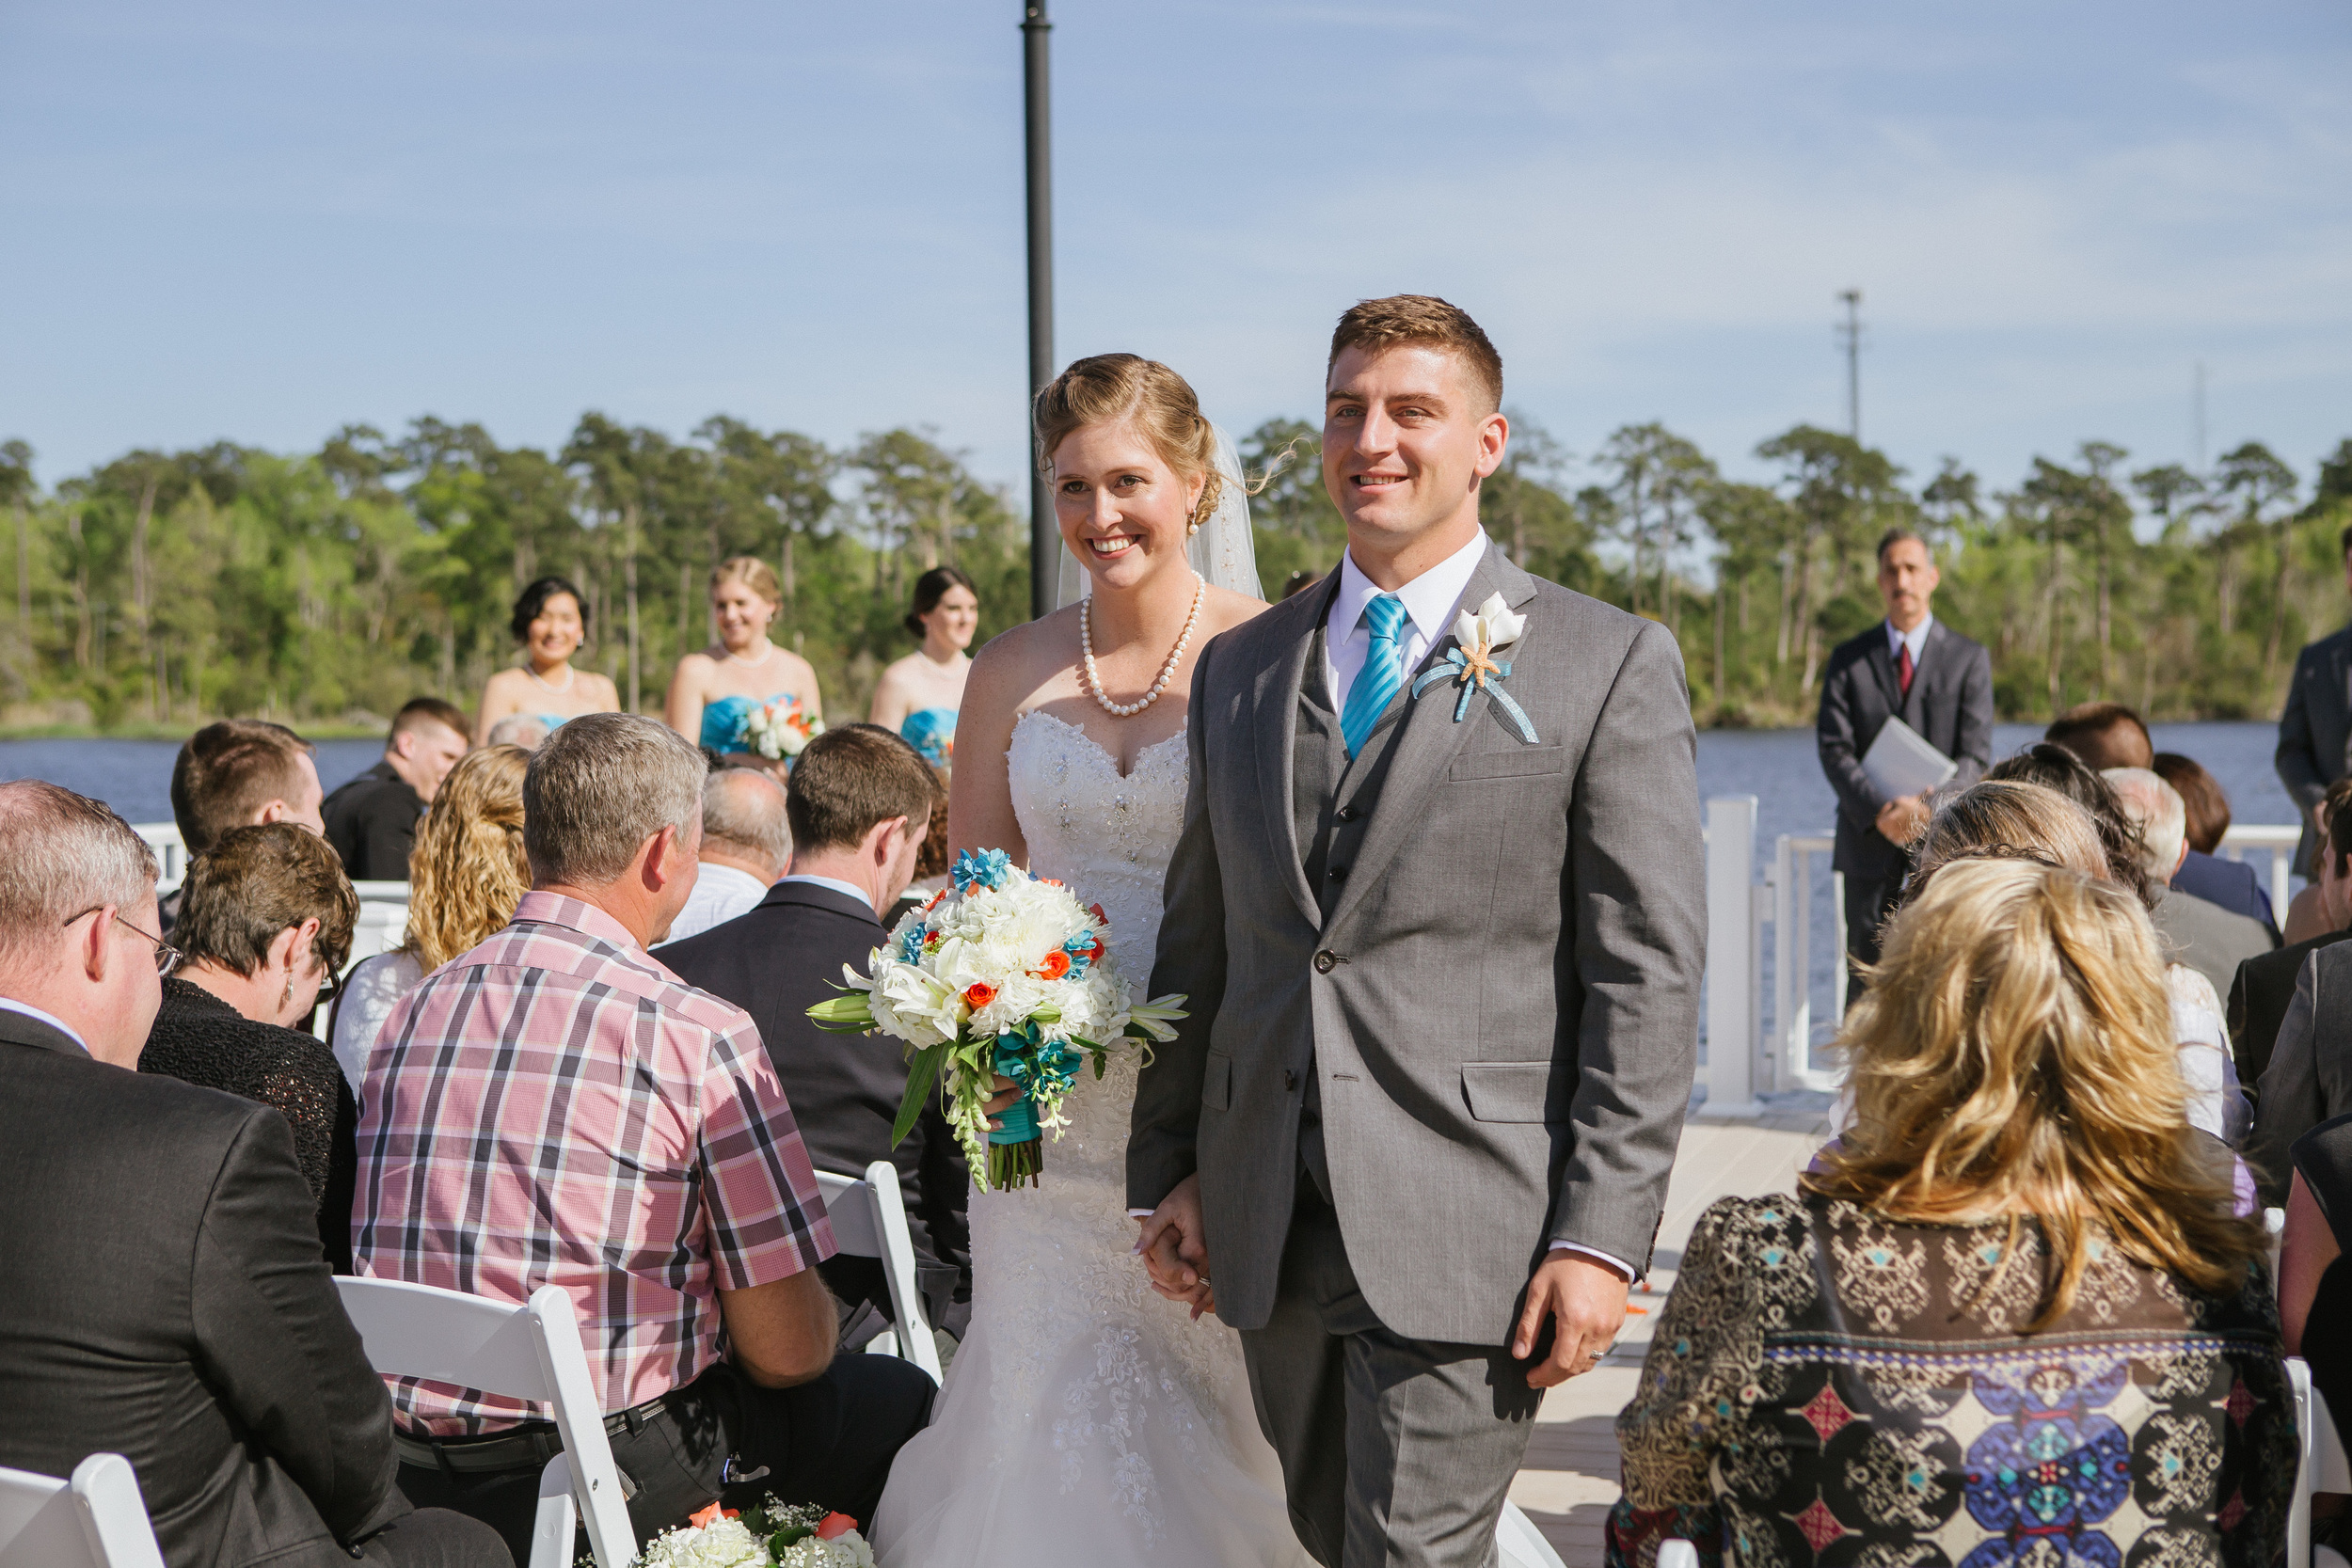 Wedding Photography Beaufort NC